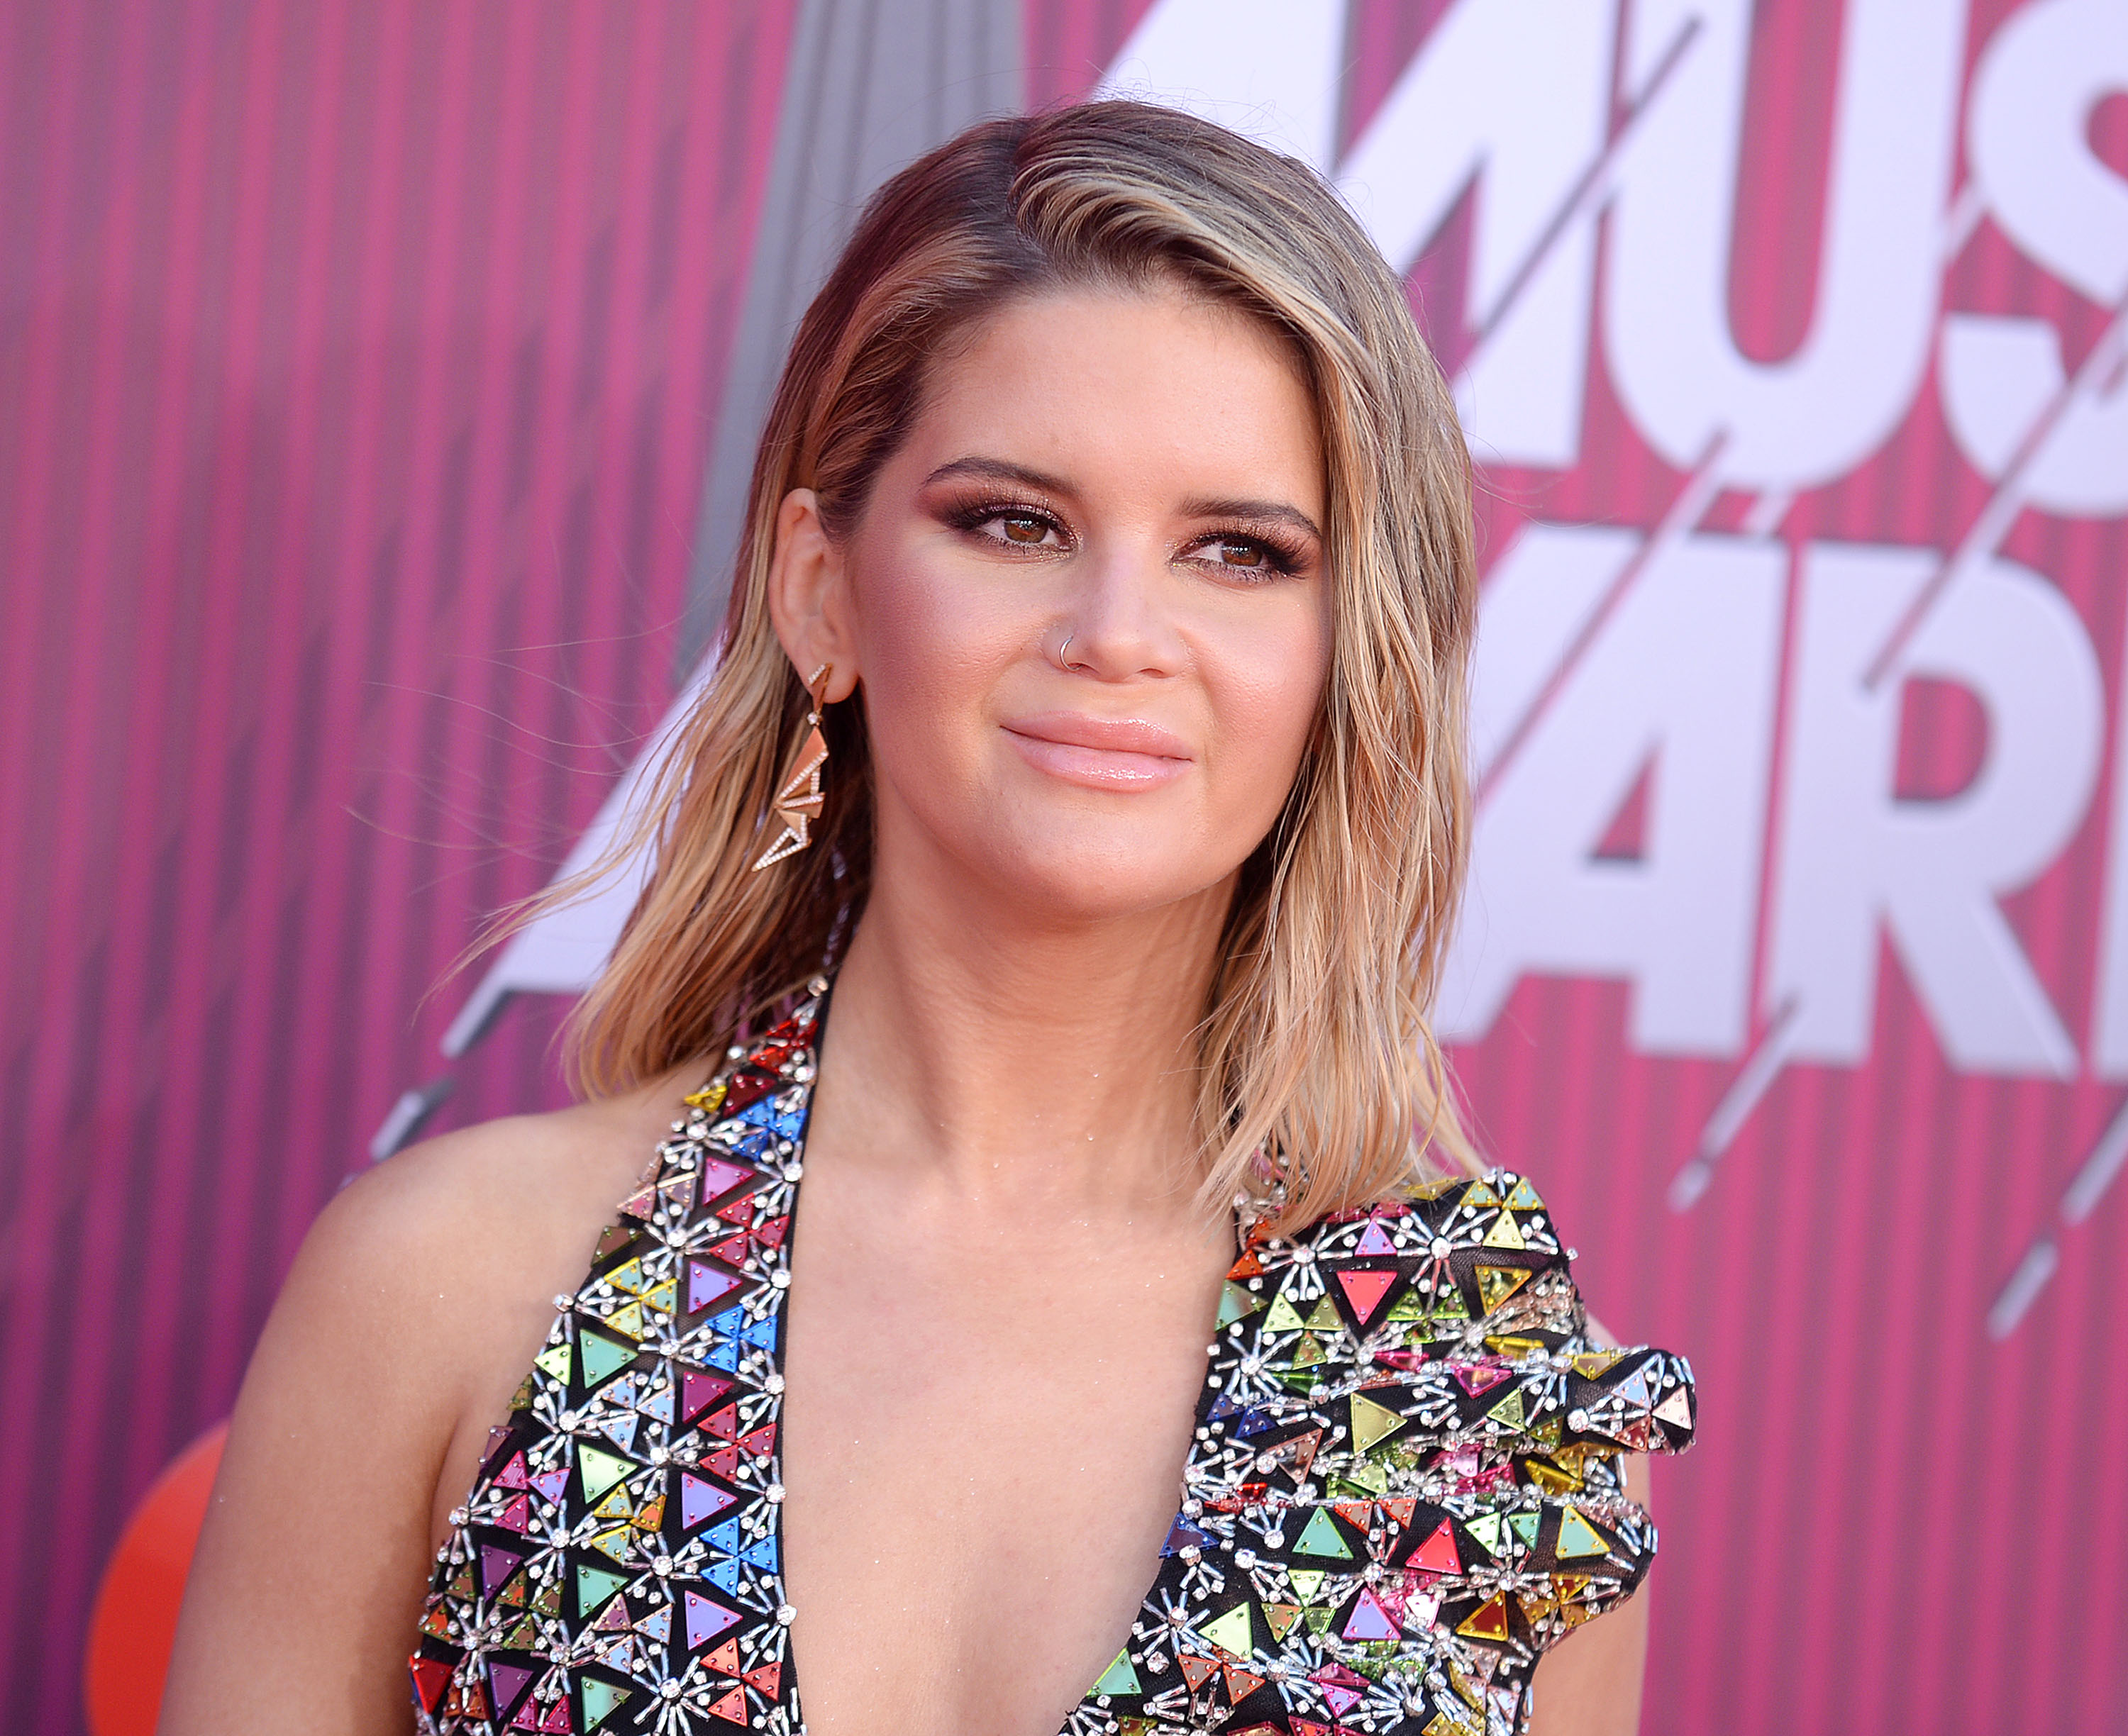 Maren Morris and Miranda Lambert Top 2019 CMT Music Awards